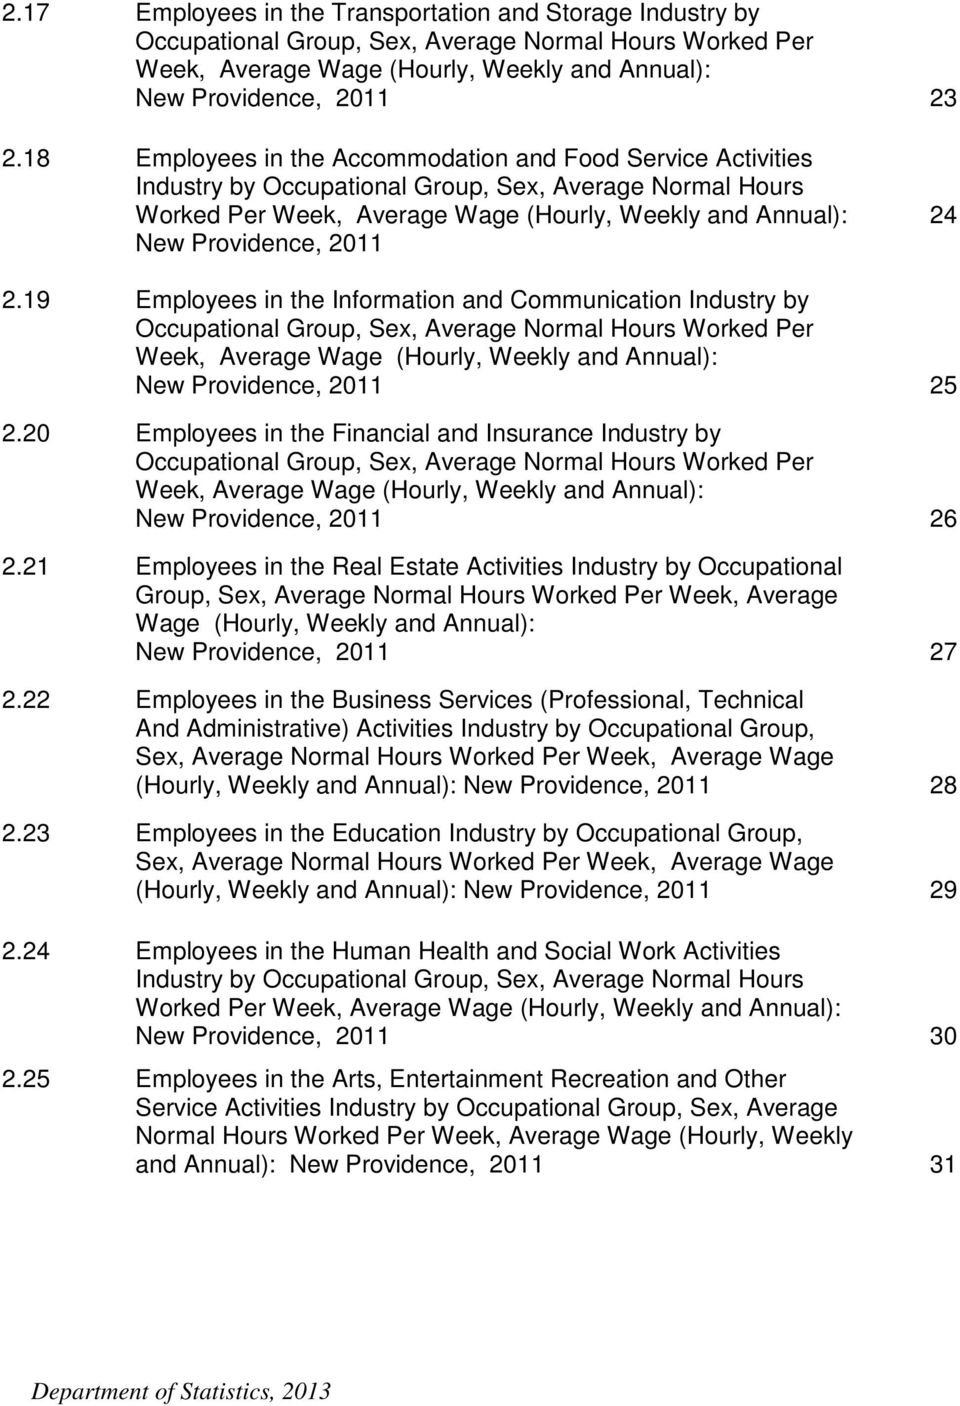 24 2.19 Employees in the Information and Communication Industry by Occupational Group, Sex, Average Normal Hours Worked Per Week, Average Wage (Hourly, Weekly and Annual): New Providence, 2011 25 2.